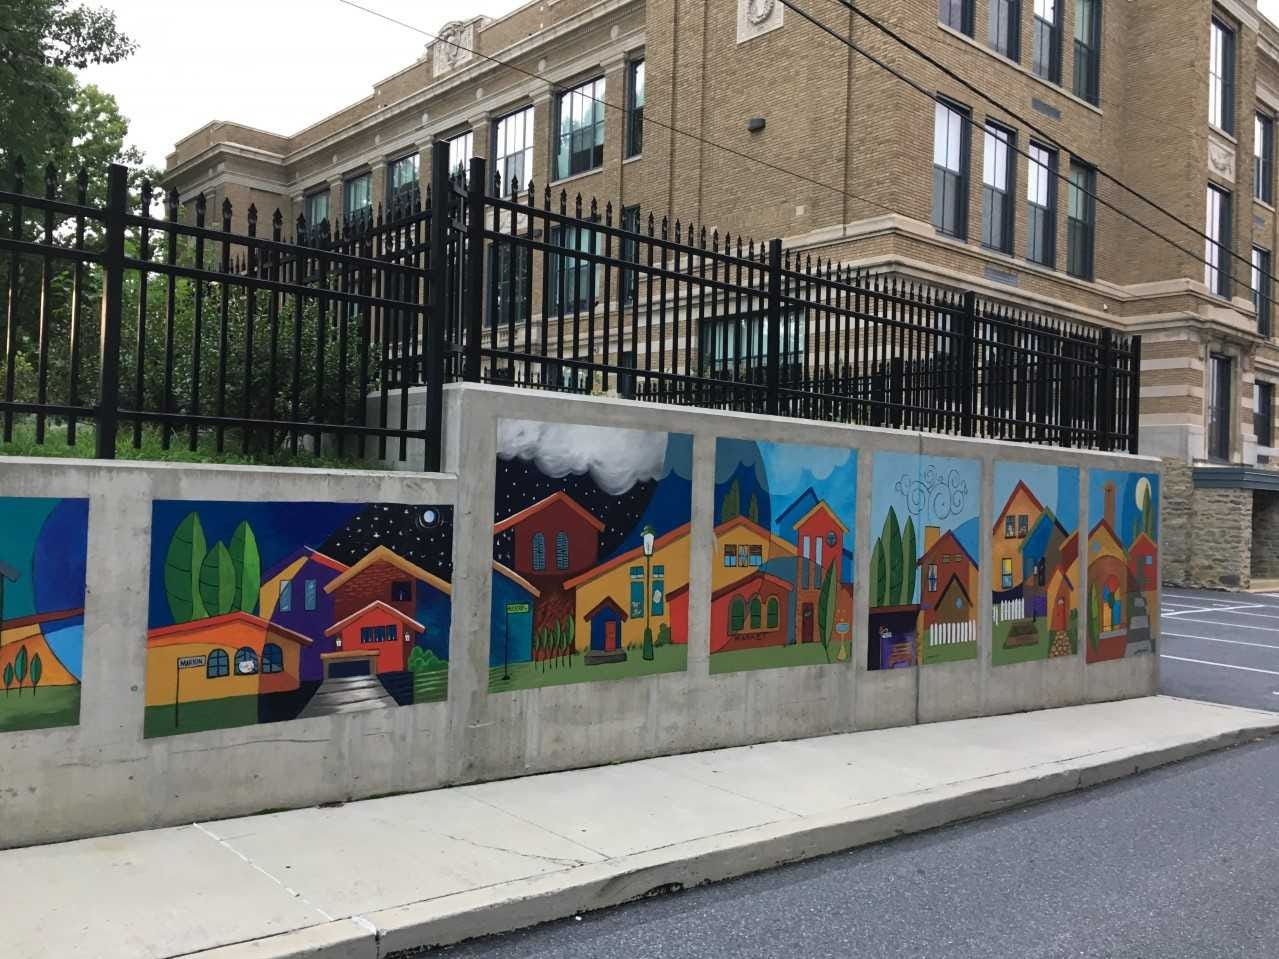 Ophelia Chambliss' work appears on a wall near Robert Fulton Elementary School in Lancaster.